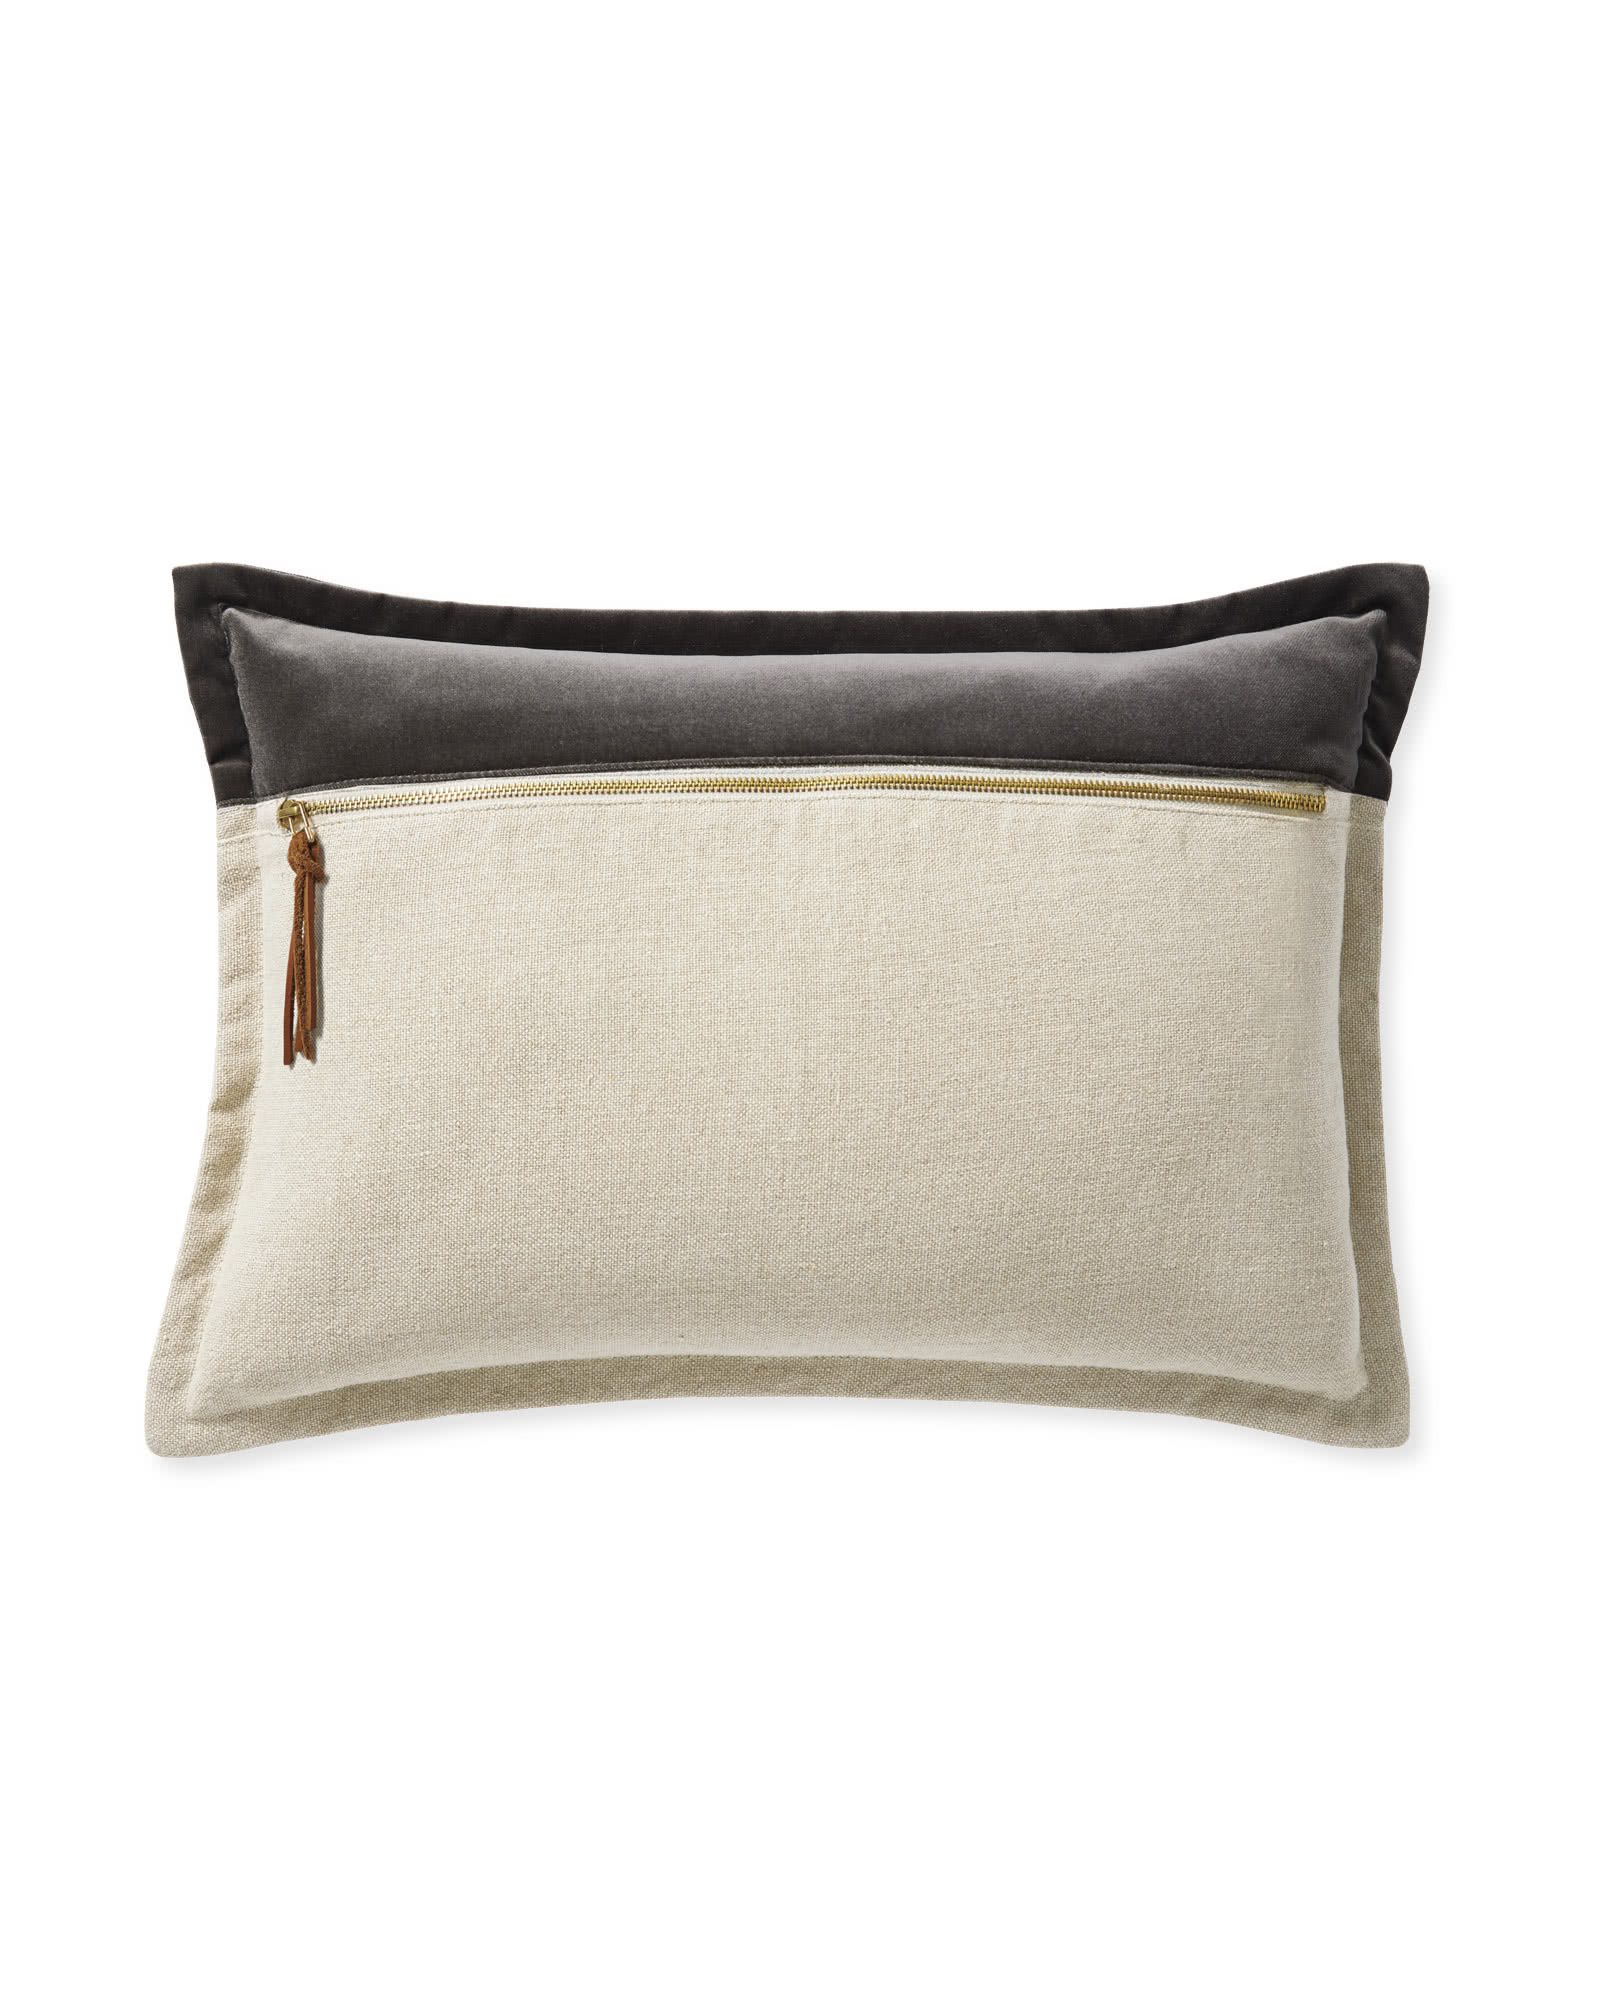 Quinn Velvet Pillow Cover, Graphite